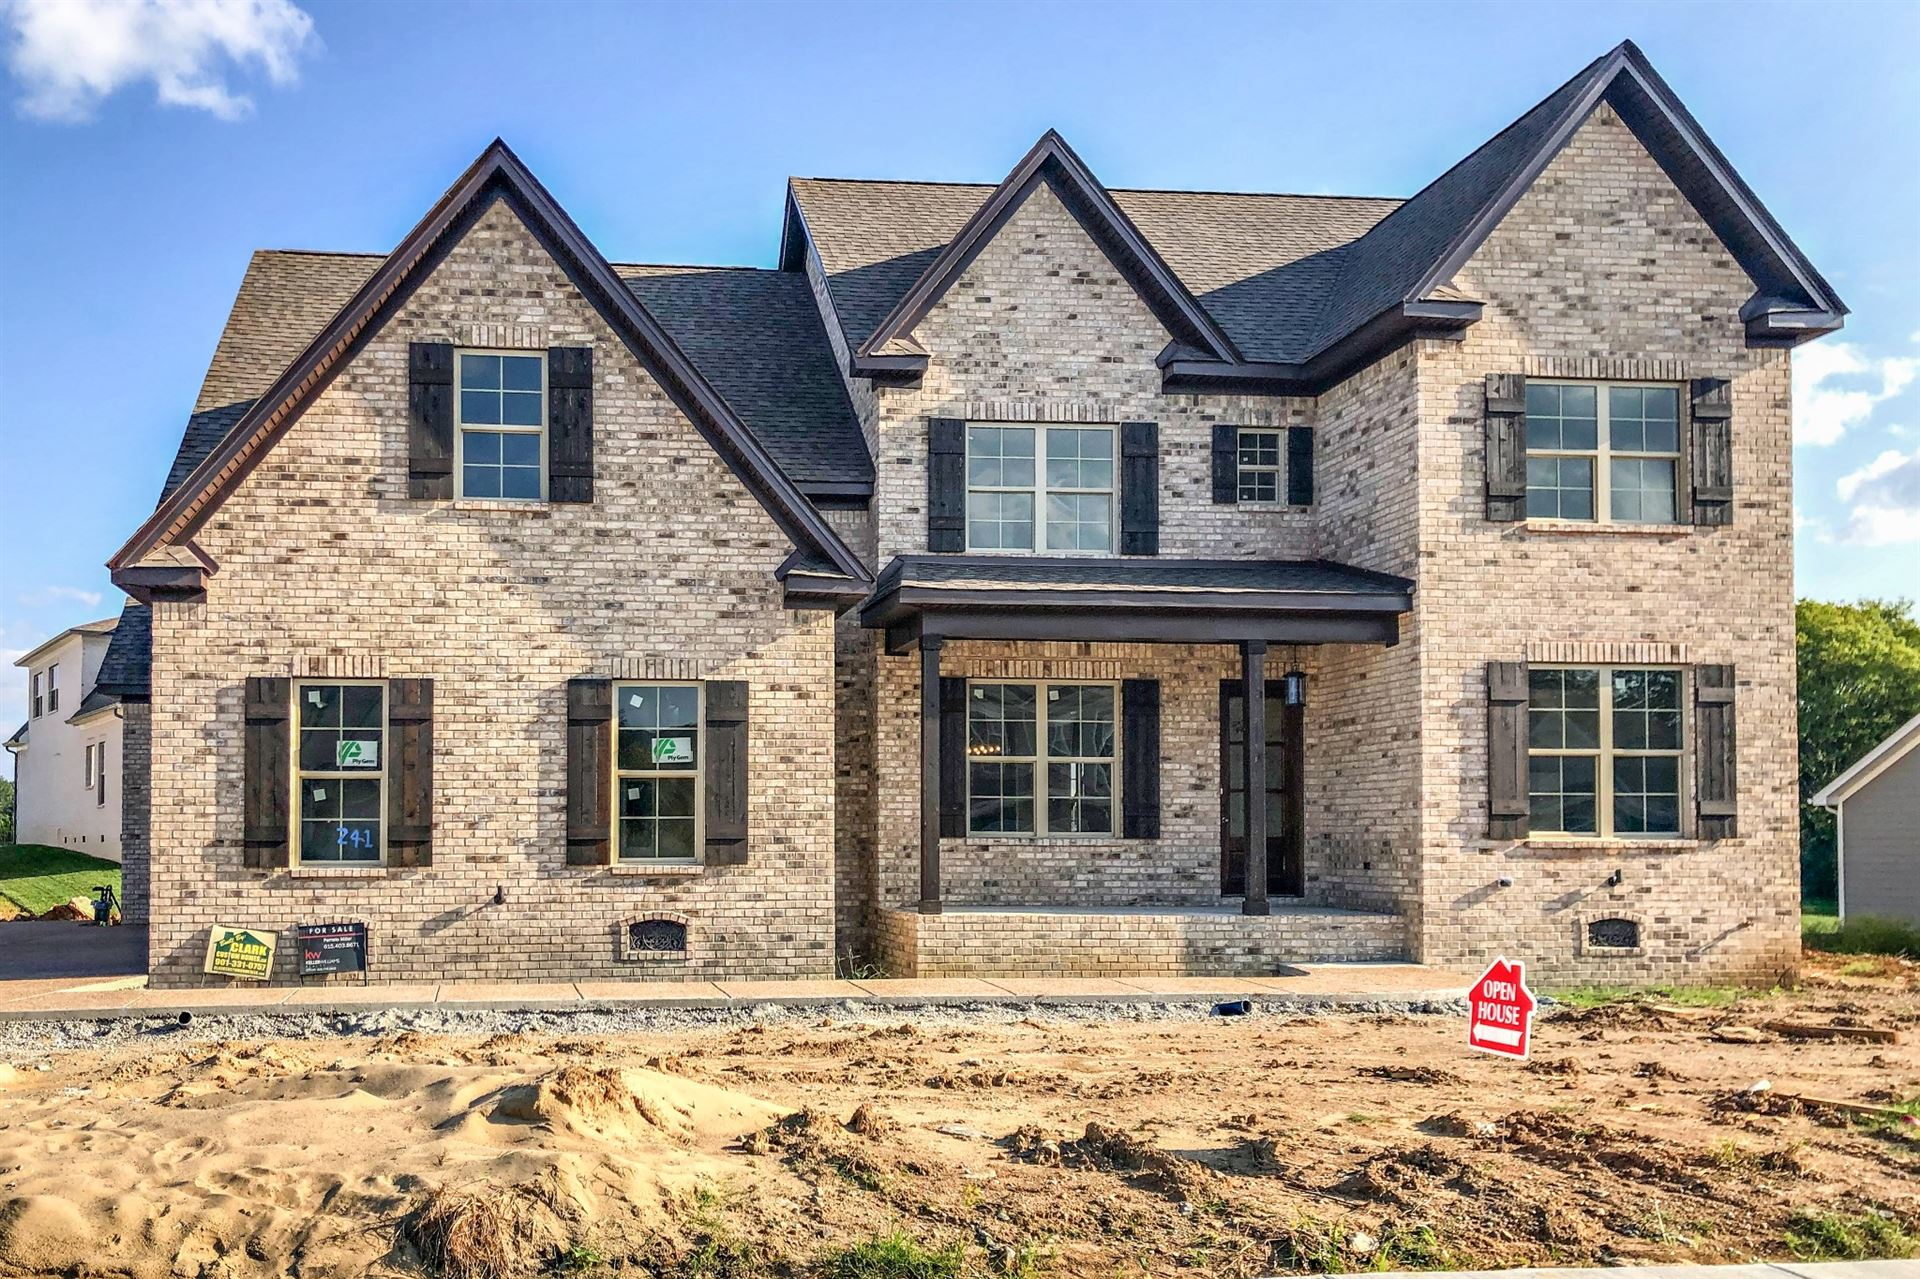 Photo of 982 Carnation Dr (Lot 241), Spring Hill, TN 37174 (MLS # 2177991)